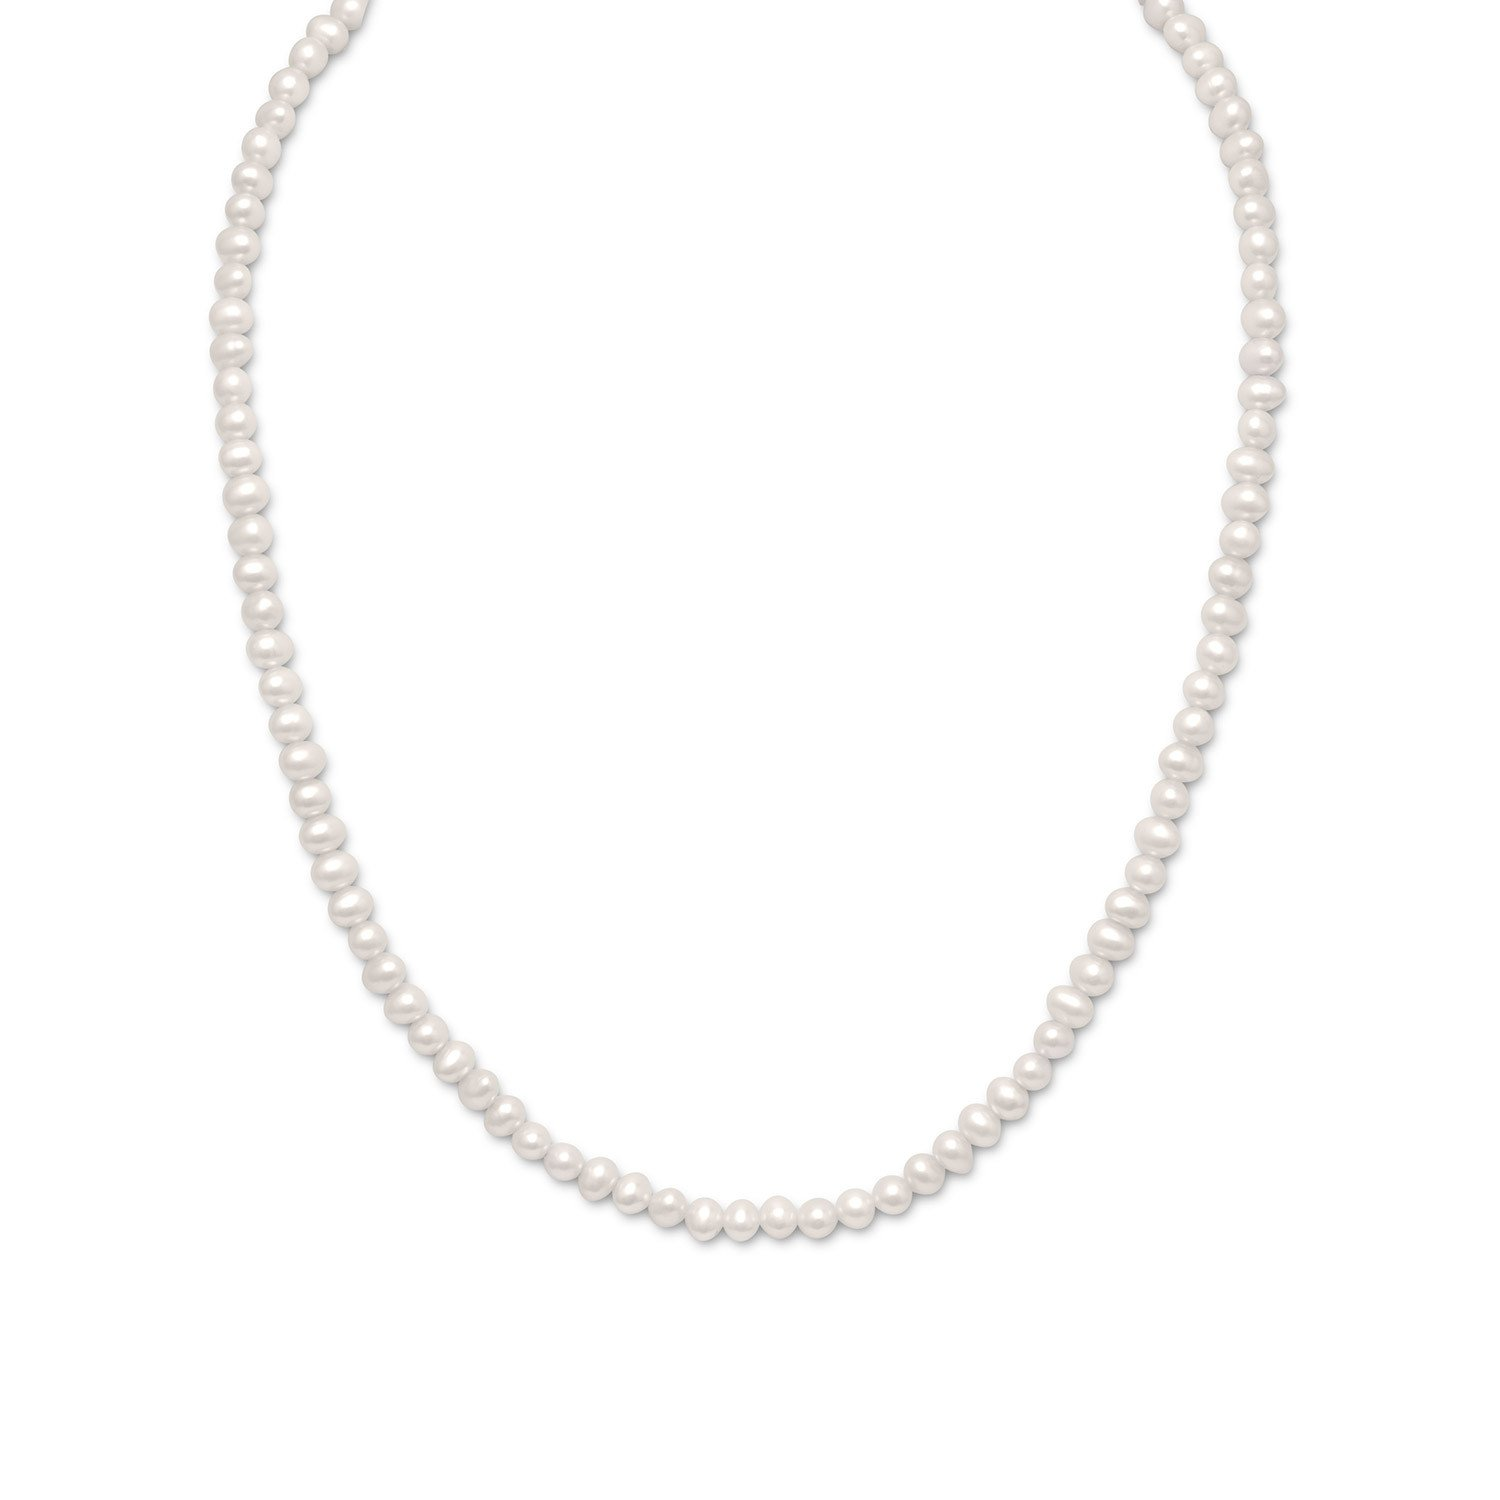 15″+2″ Extension White Cultured Freshwater Pearl Necklace